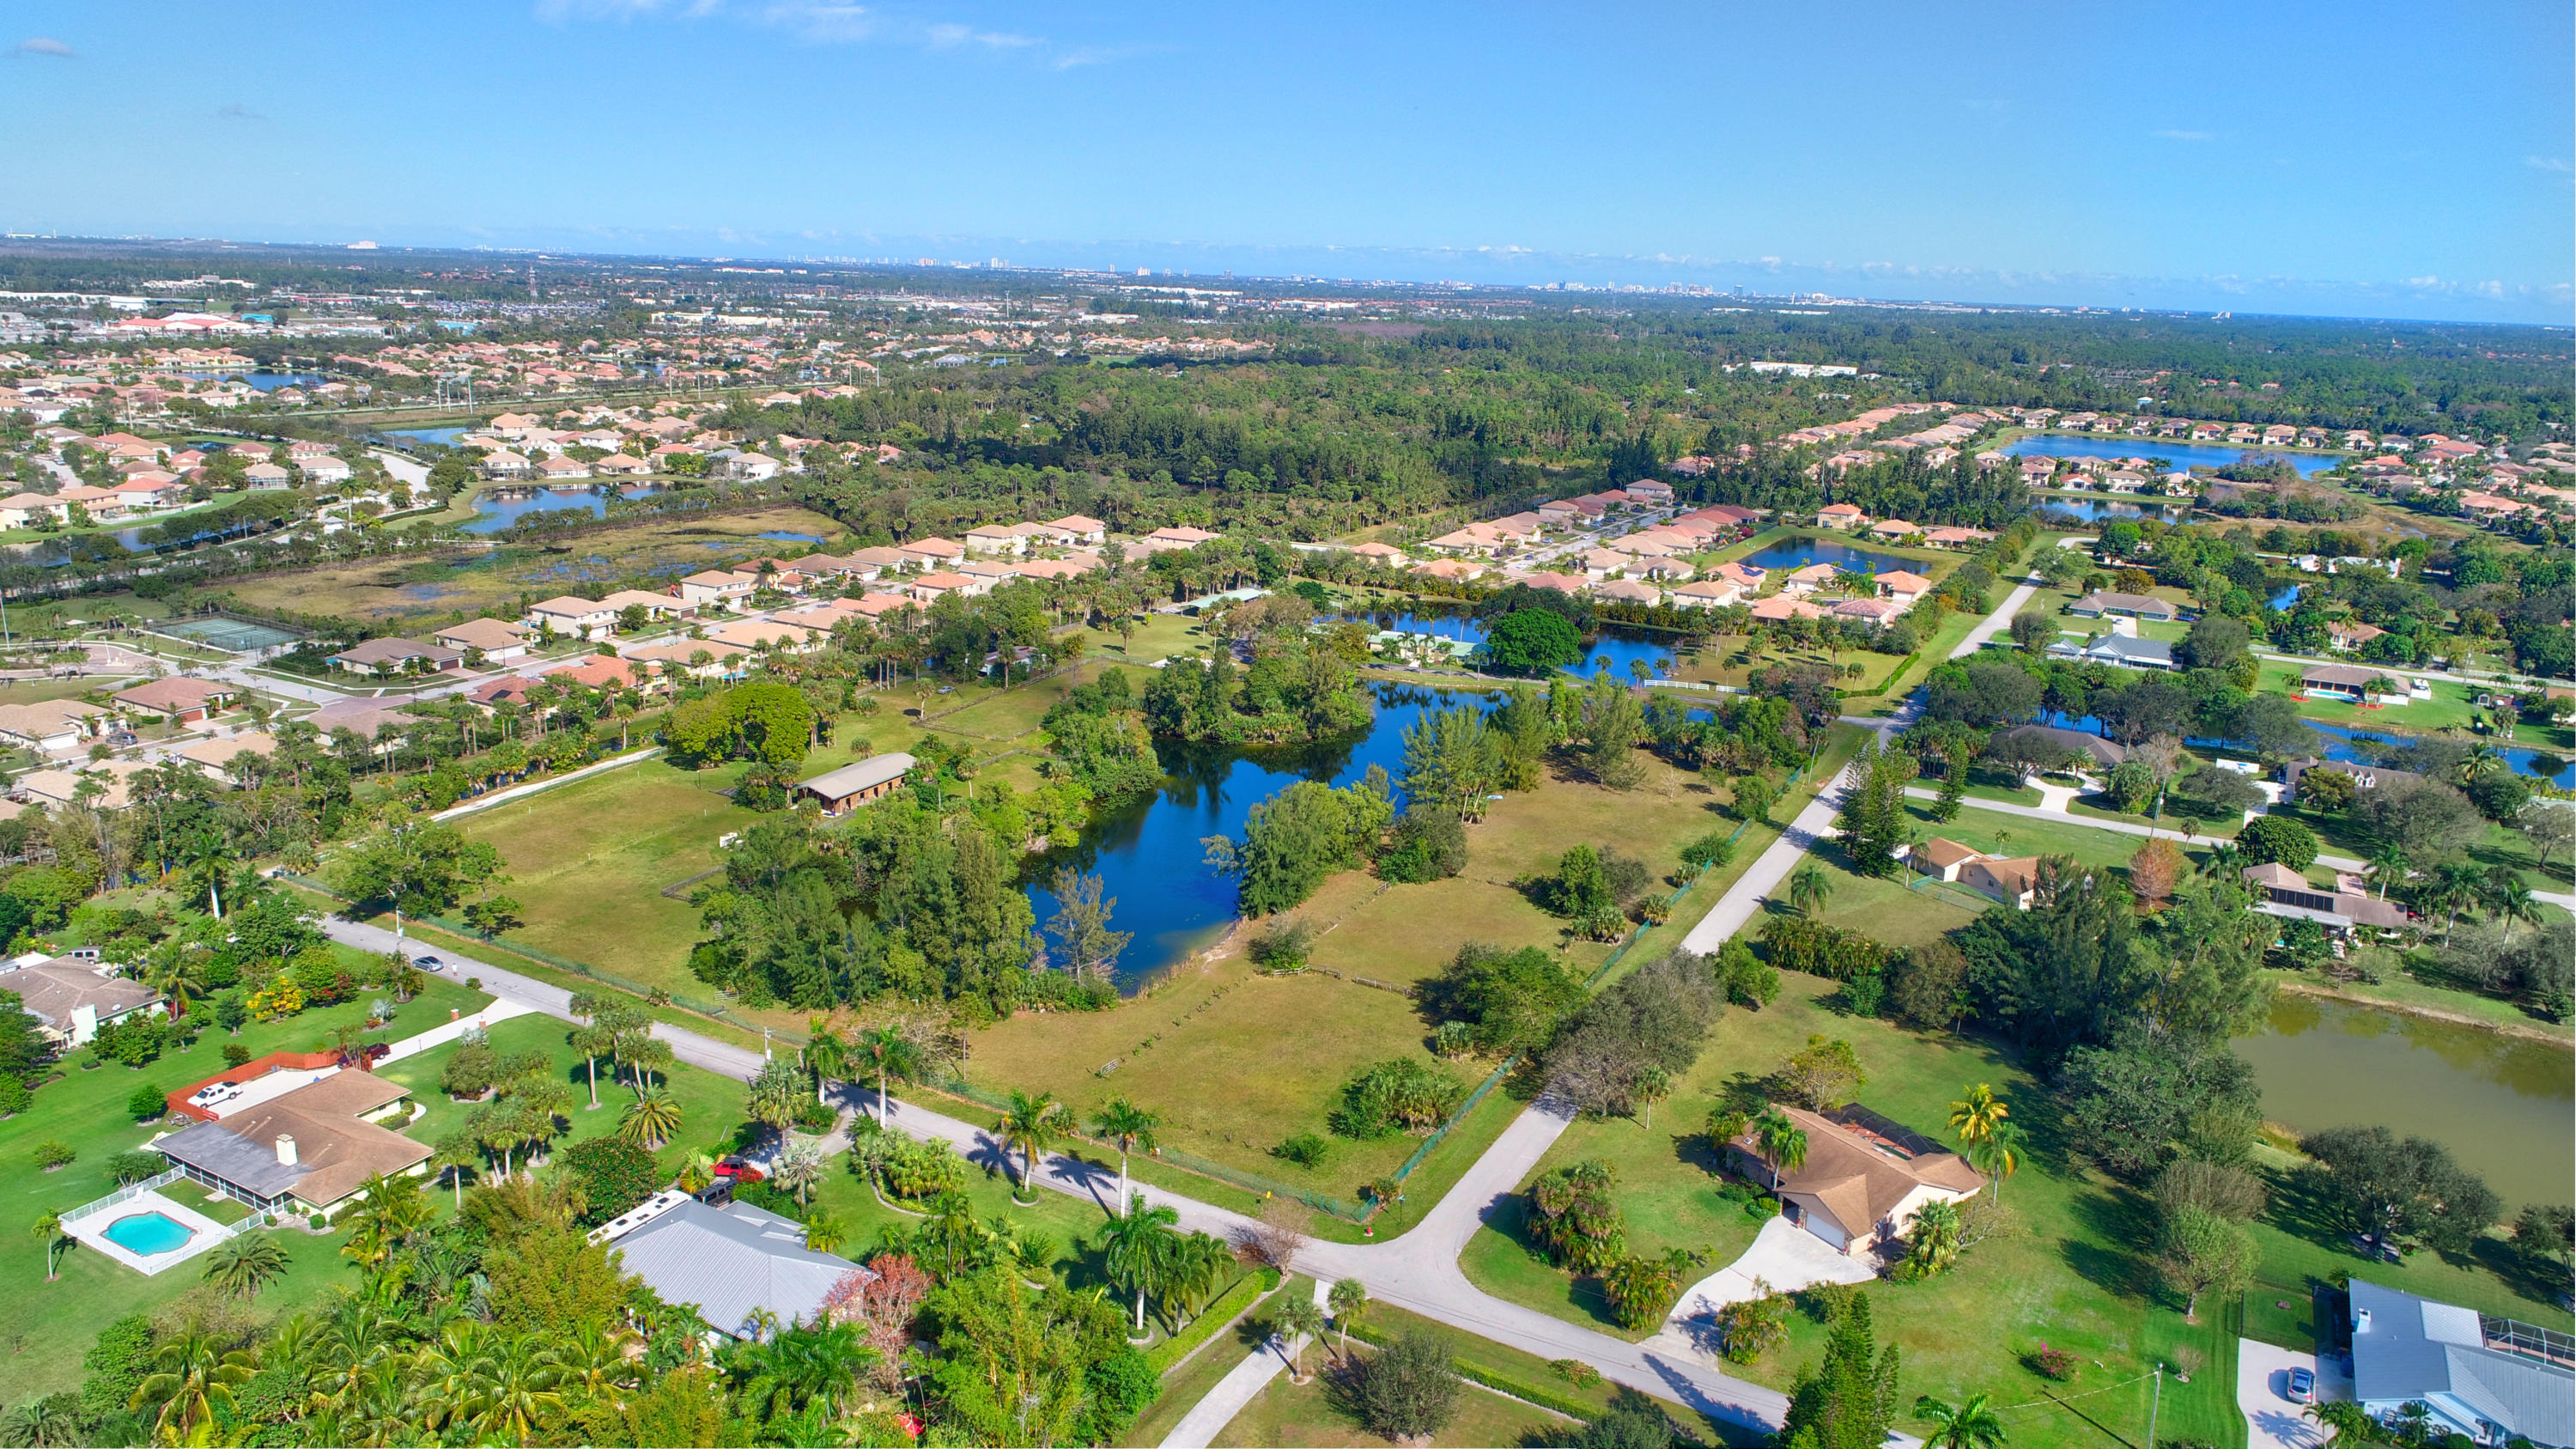 575 Whippoorwill Trail West Palm Beach, FL 33411 small photo 4